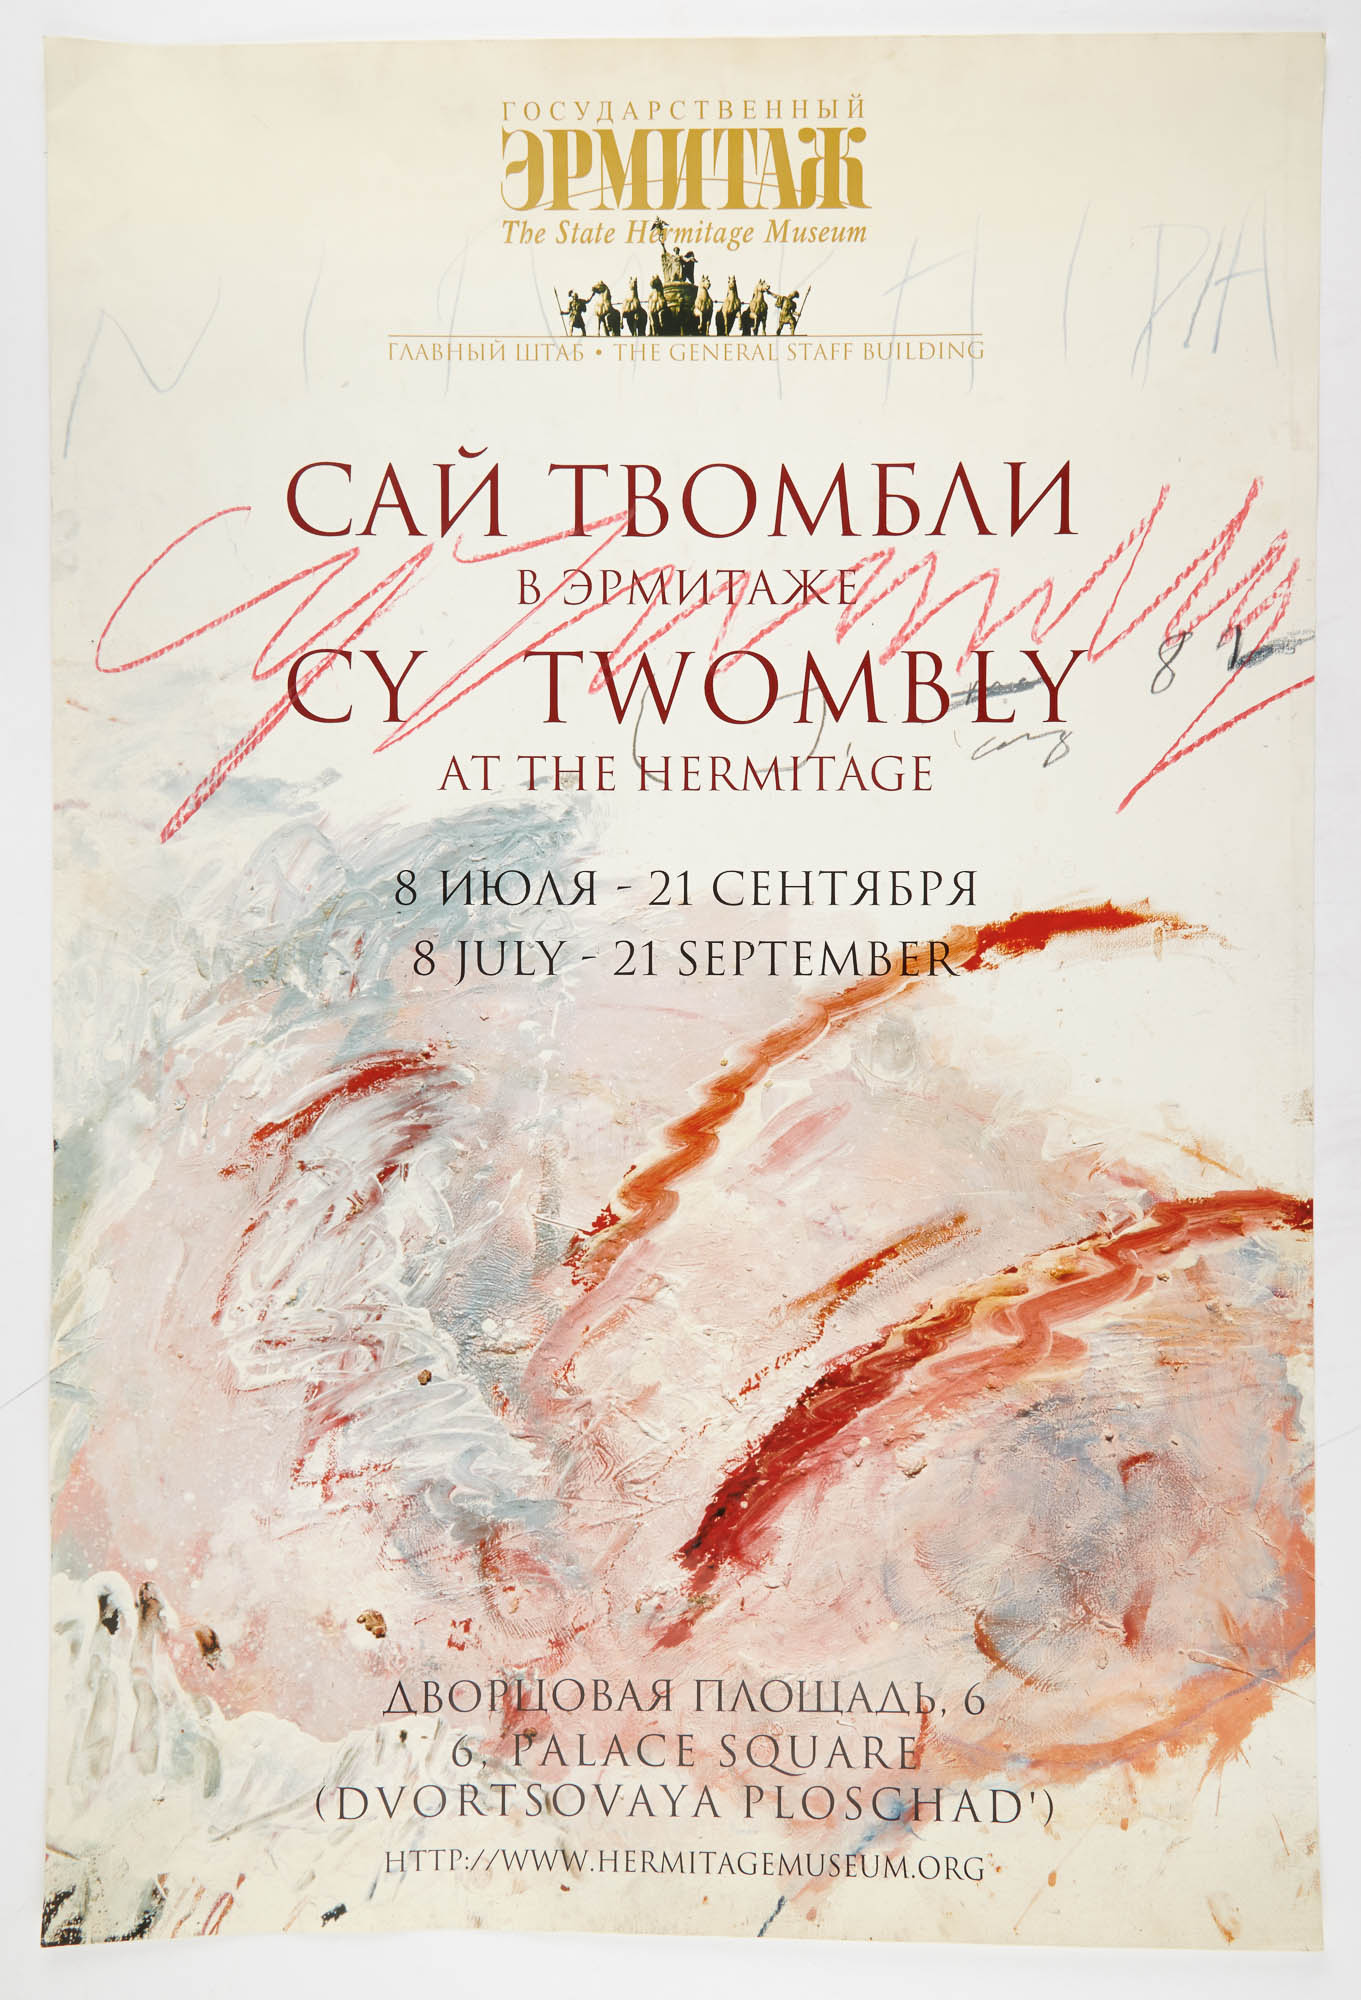 Lot image - TWOMBLY, CY  Large signature on exhibition poster.